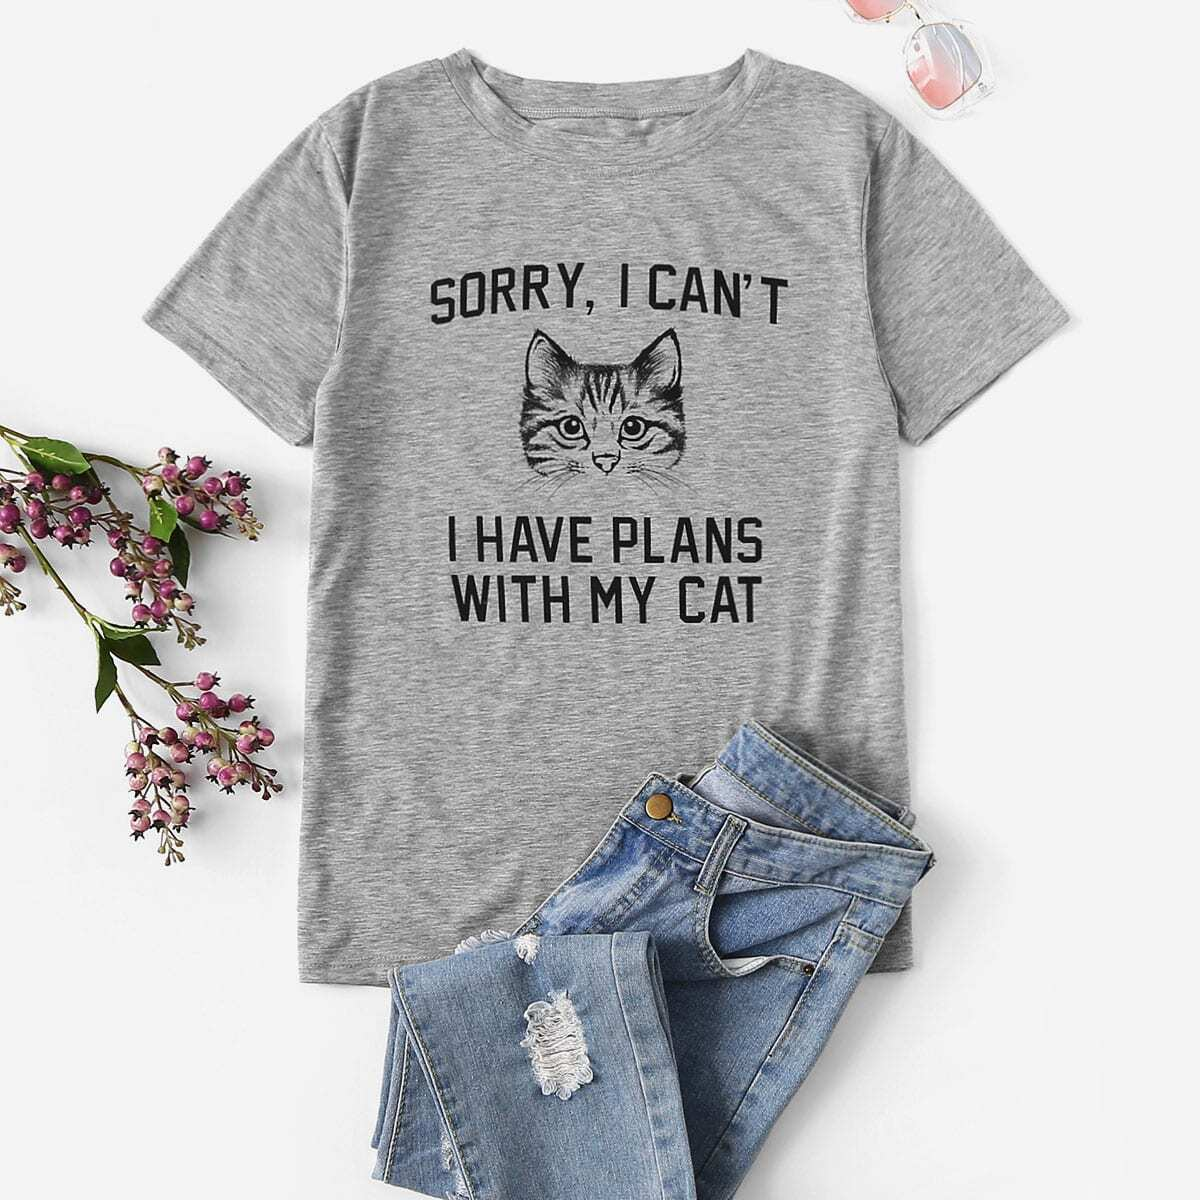 SHEIN coupon: Letter And Cat Graphic Tee